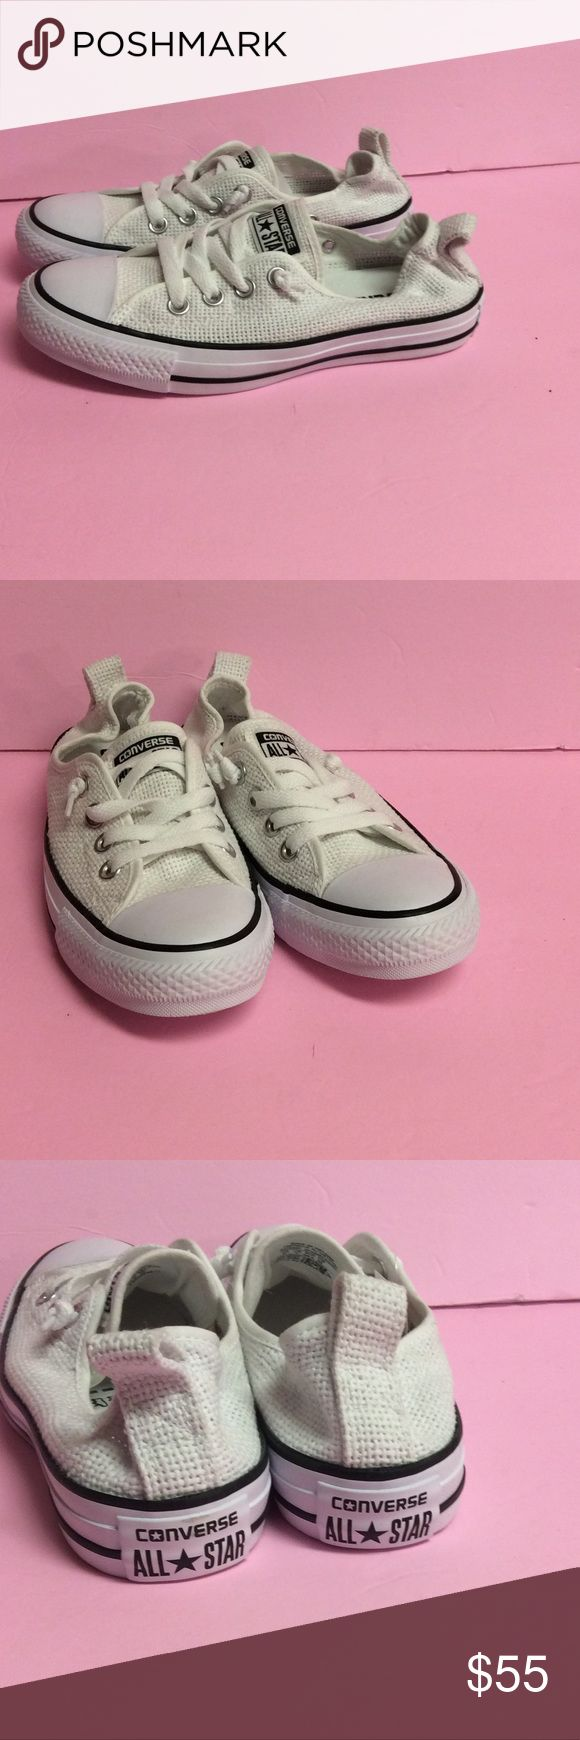 New Converse Shoreline Summer White CT Slip Ons New Converse Shoreline Summer White Chuck Taylor All Star style 547239.  Women's Sneakers. Perfect for summer.  Also have a black pair listed in same size. Brand new, never worn shoes without box as pictured. Only have sizes listed. Converse Shoes Sneakers